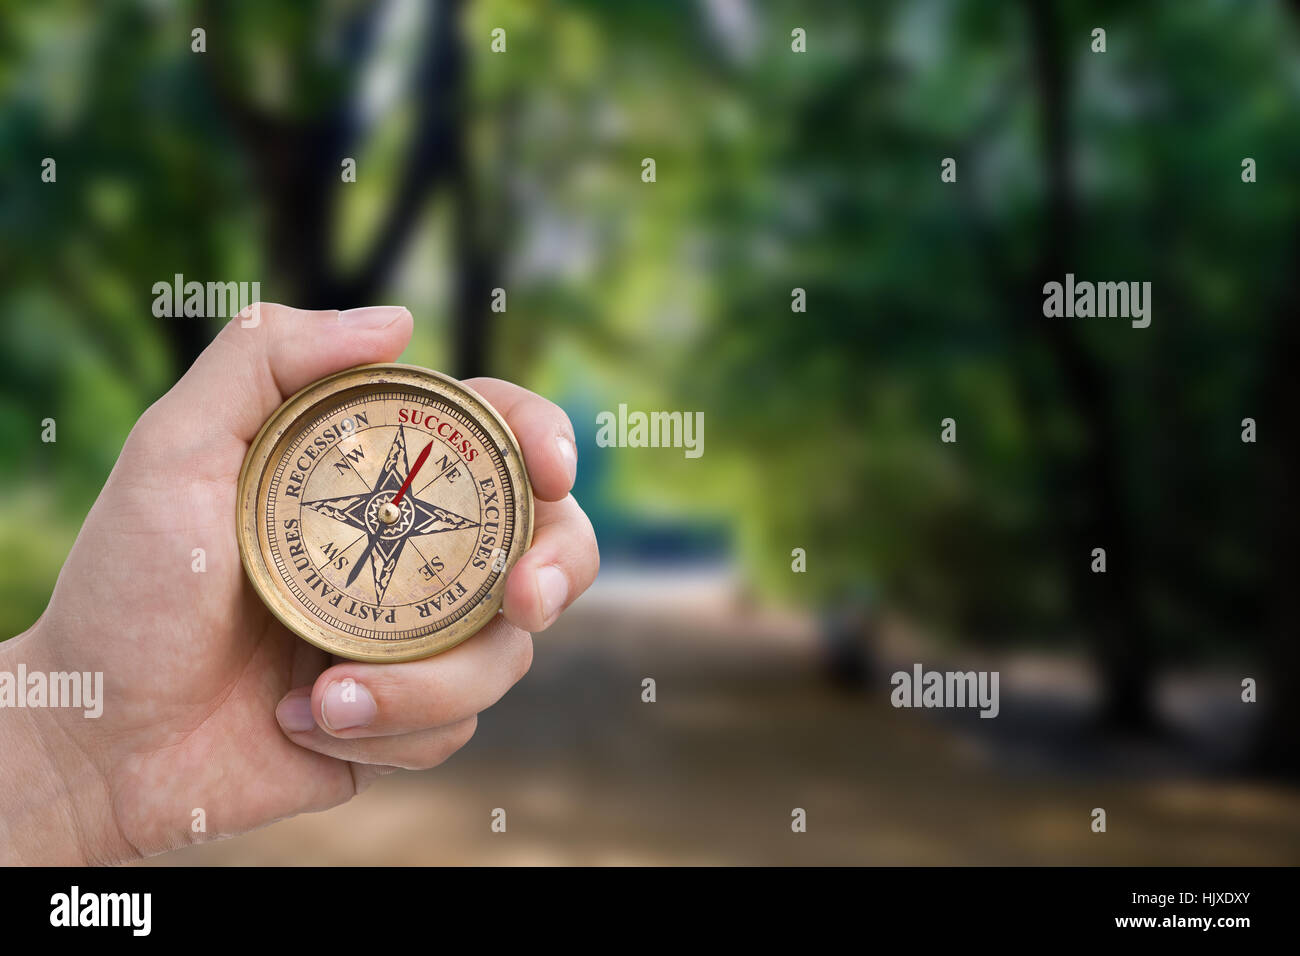 Success, excuses, fear, past failures, recession compass. Includes clipping path. - Stock Image